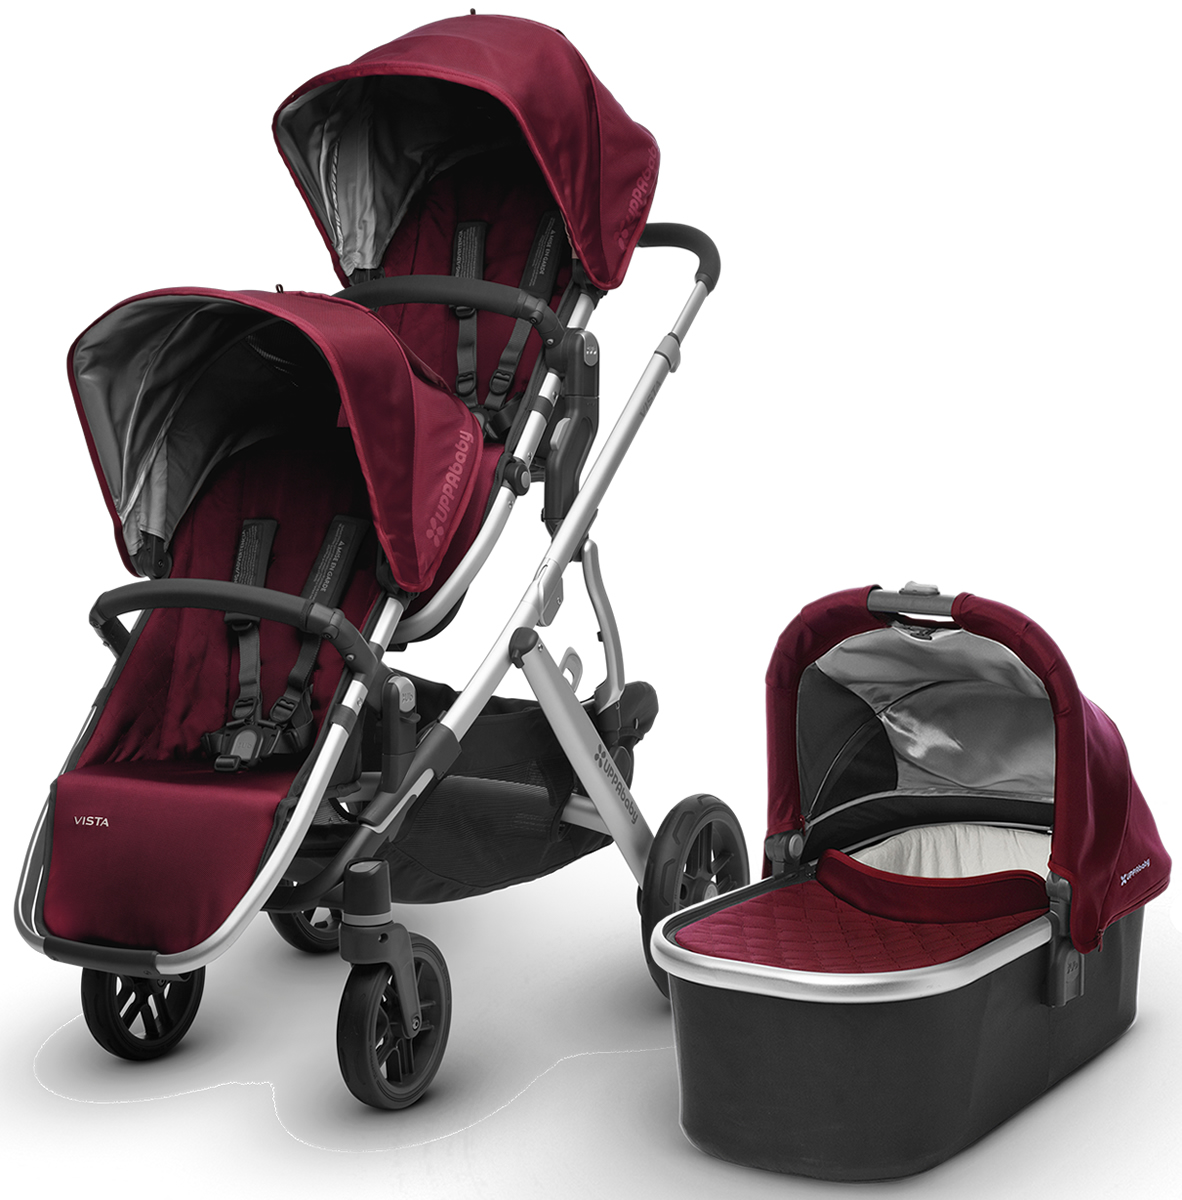 Uppababy 2017 Vista Double Stroller Dennison Bordeaux